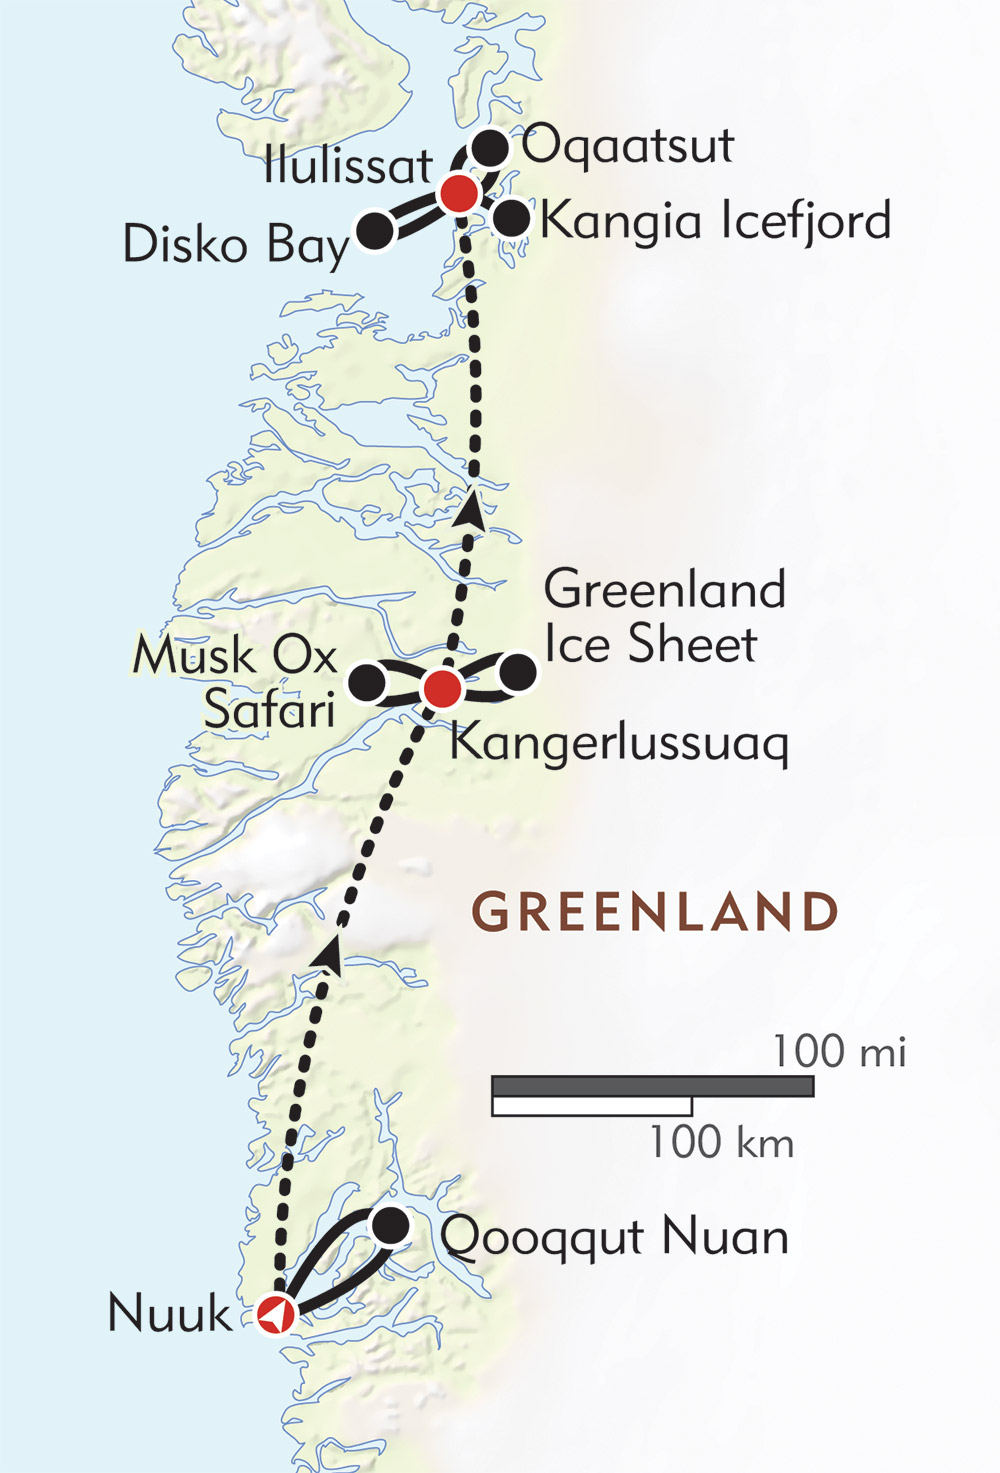 Greenland Wildlife and Nature Safari route-map